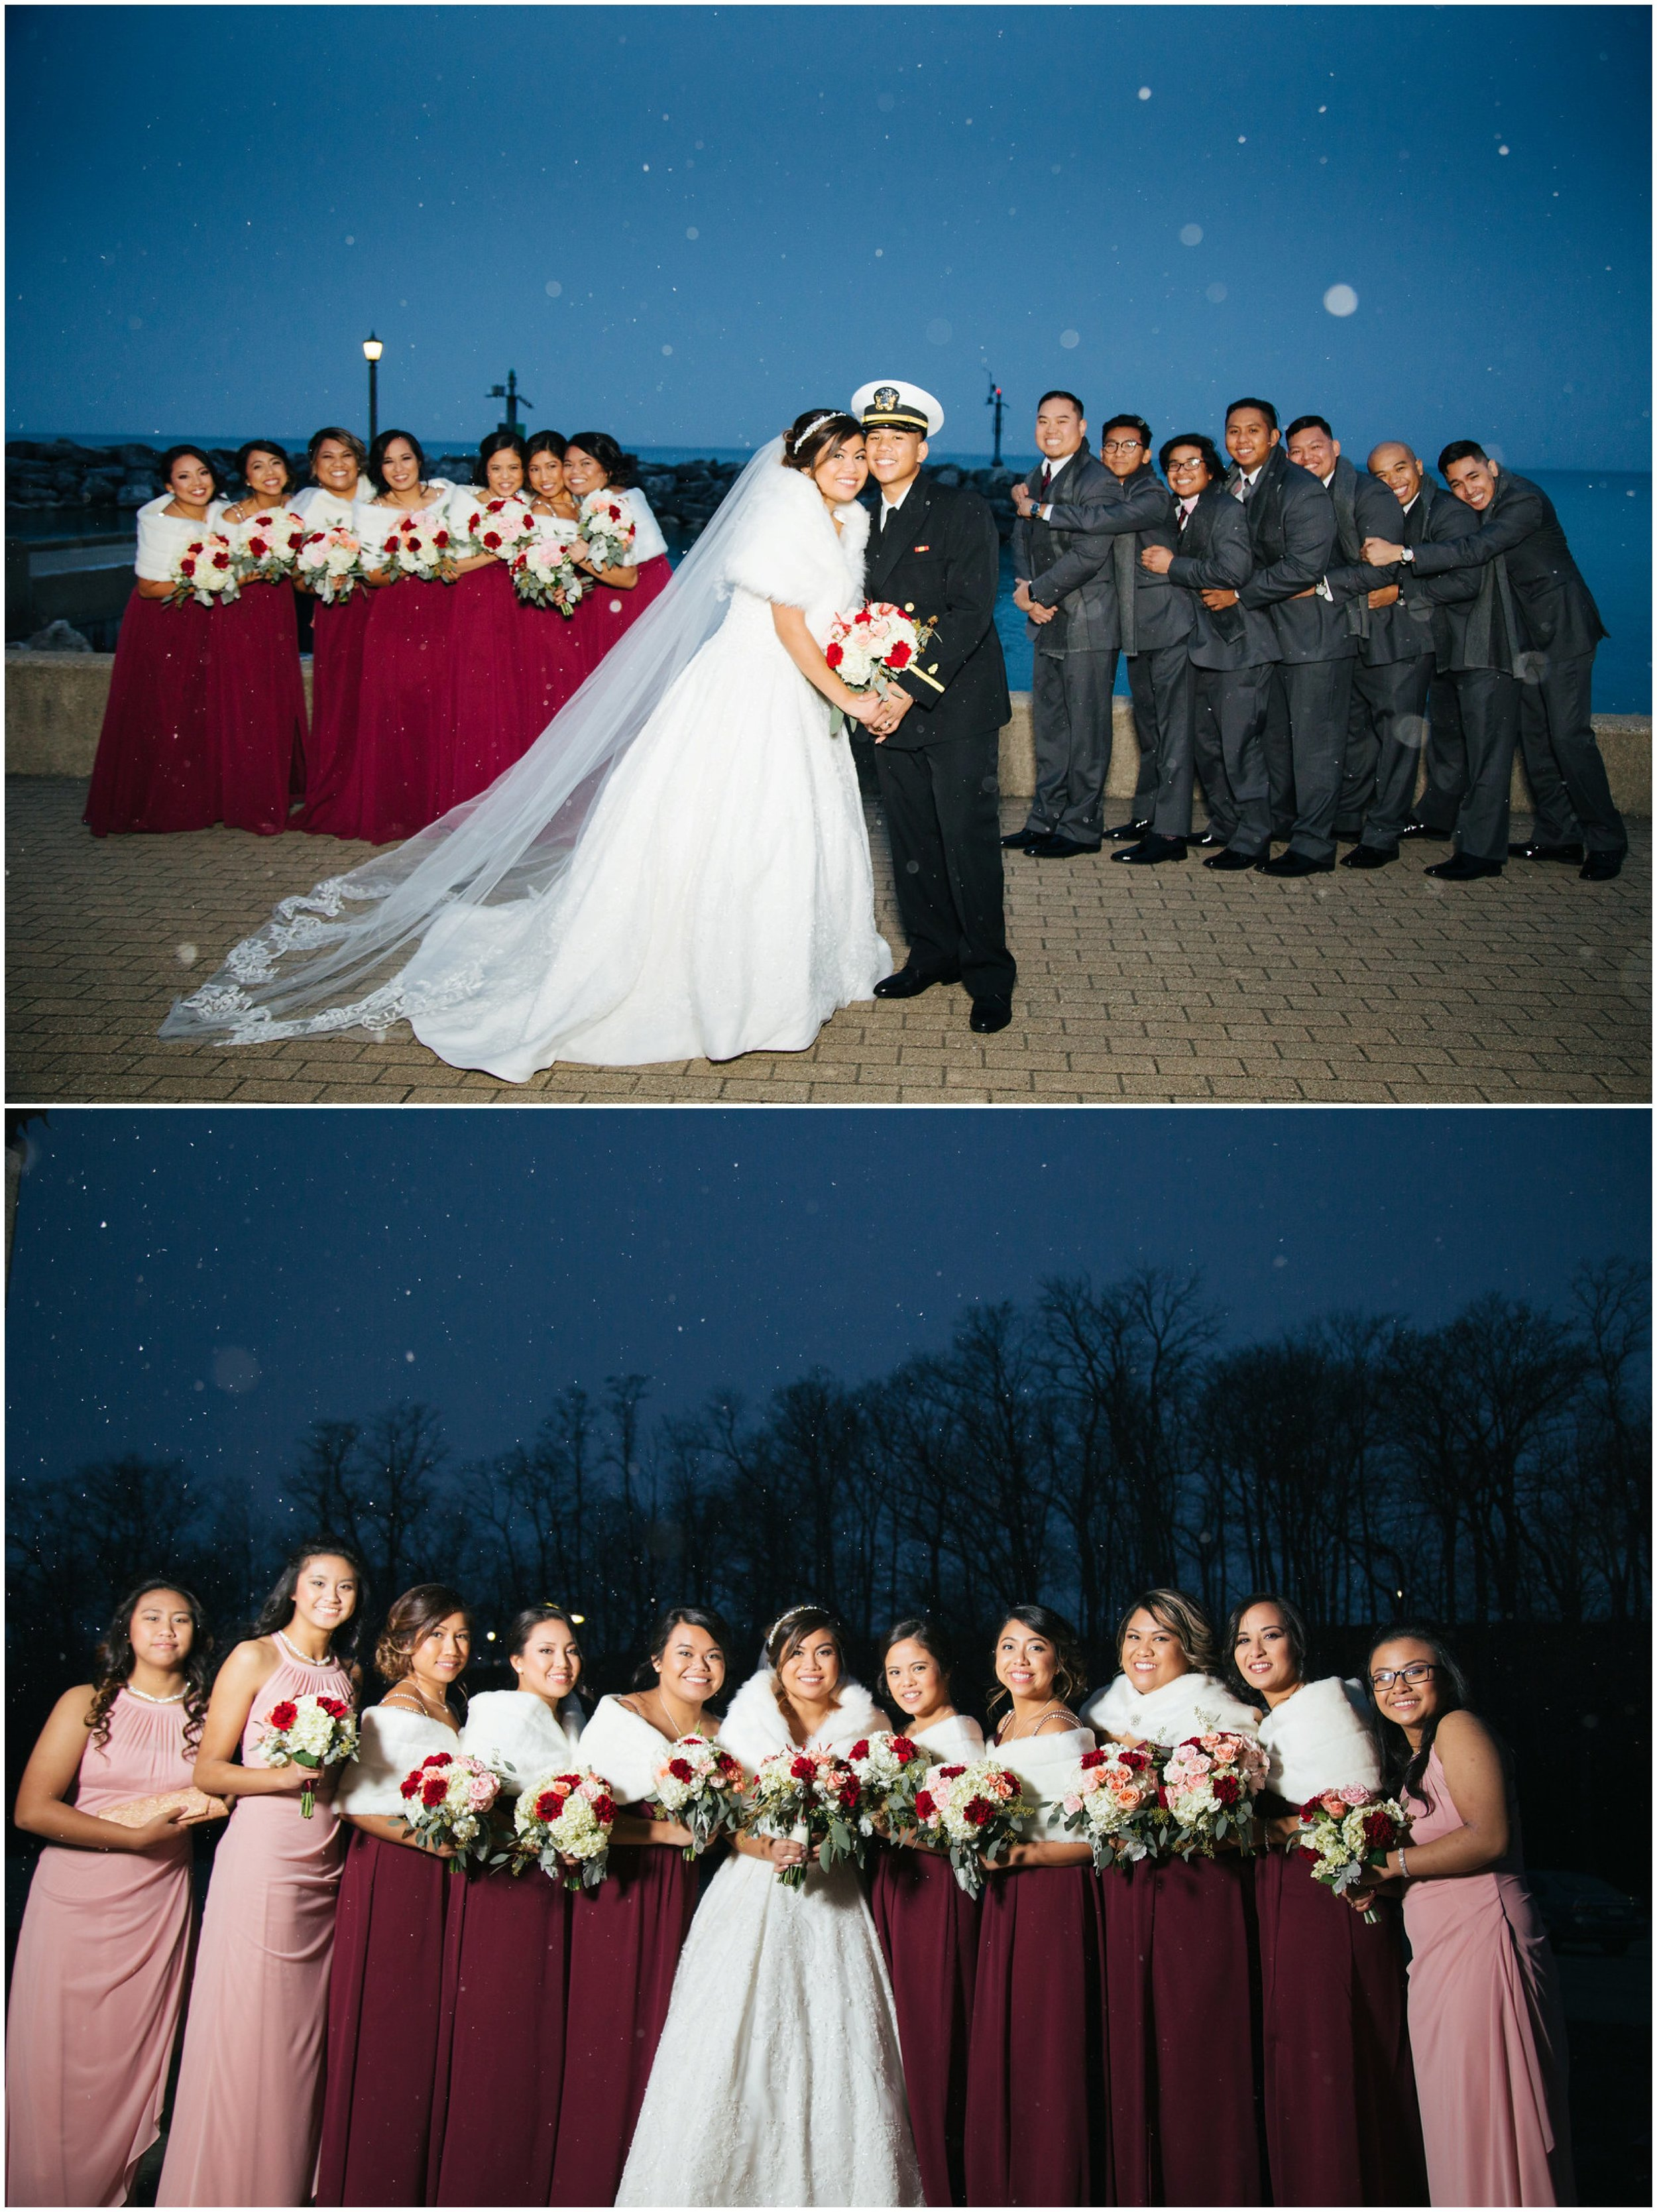 Le Cape Weddings- Chicago Wedding - Ryma and Eejay_-397-X3_LuxuryDestinationPhotographer.jpg